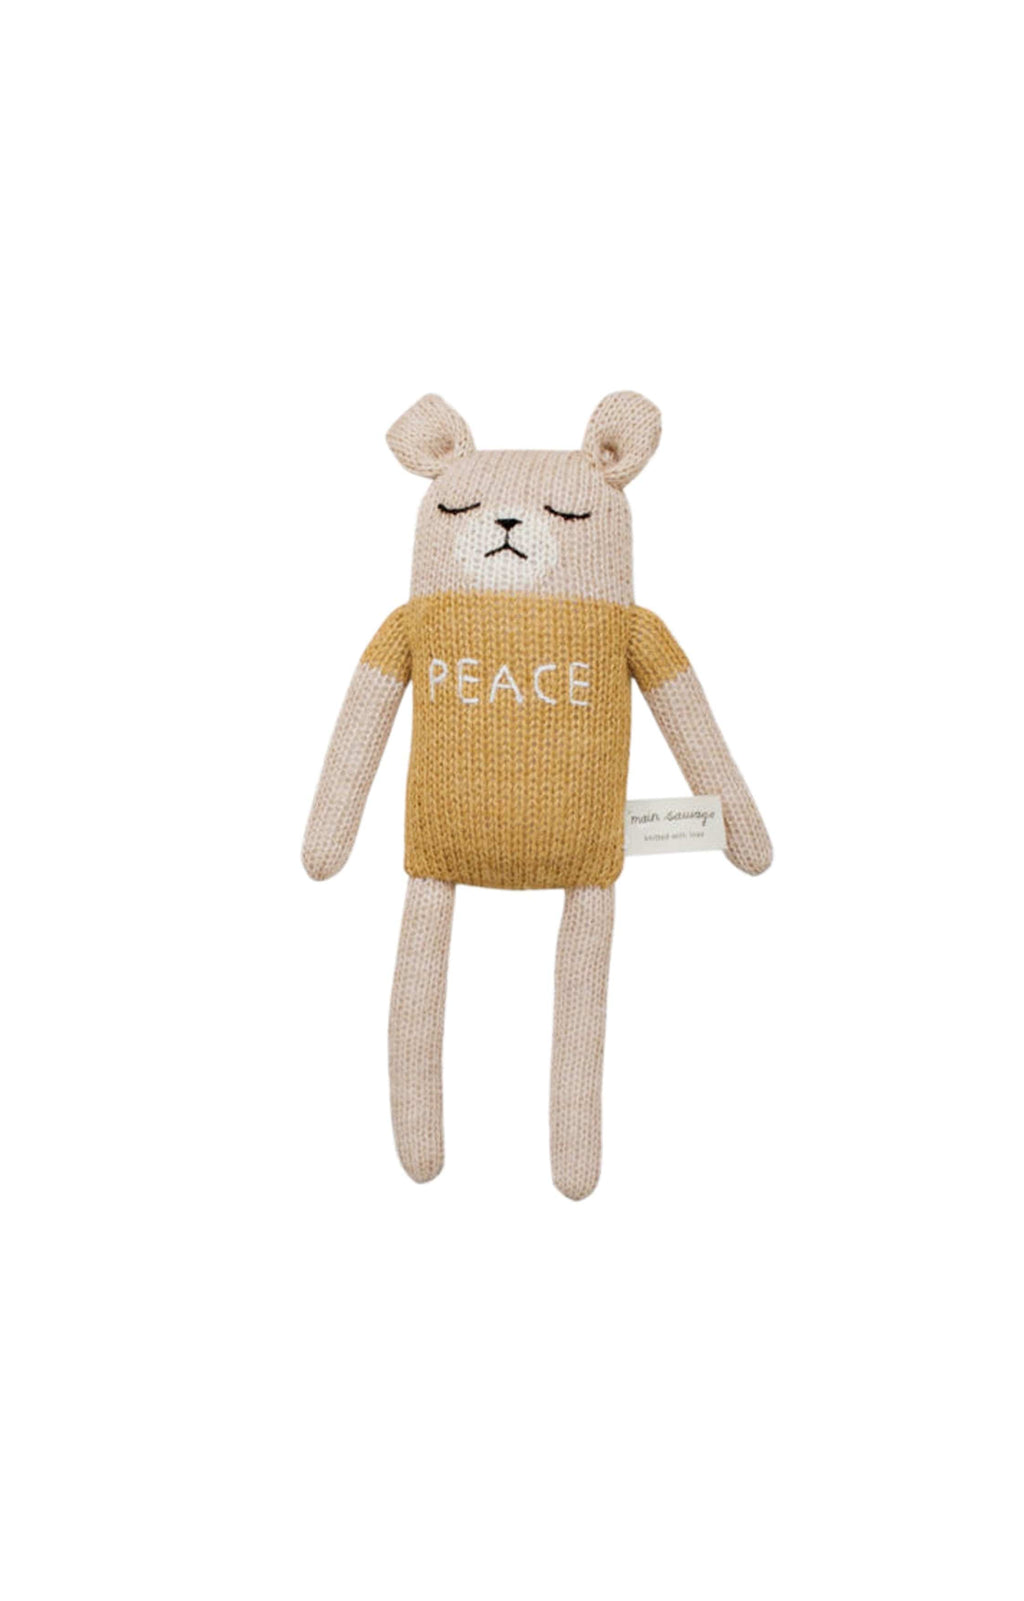 "Main Sauvage ""peace"" teddy knit toy, ochre (Pre-Order Feb)"